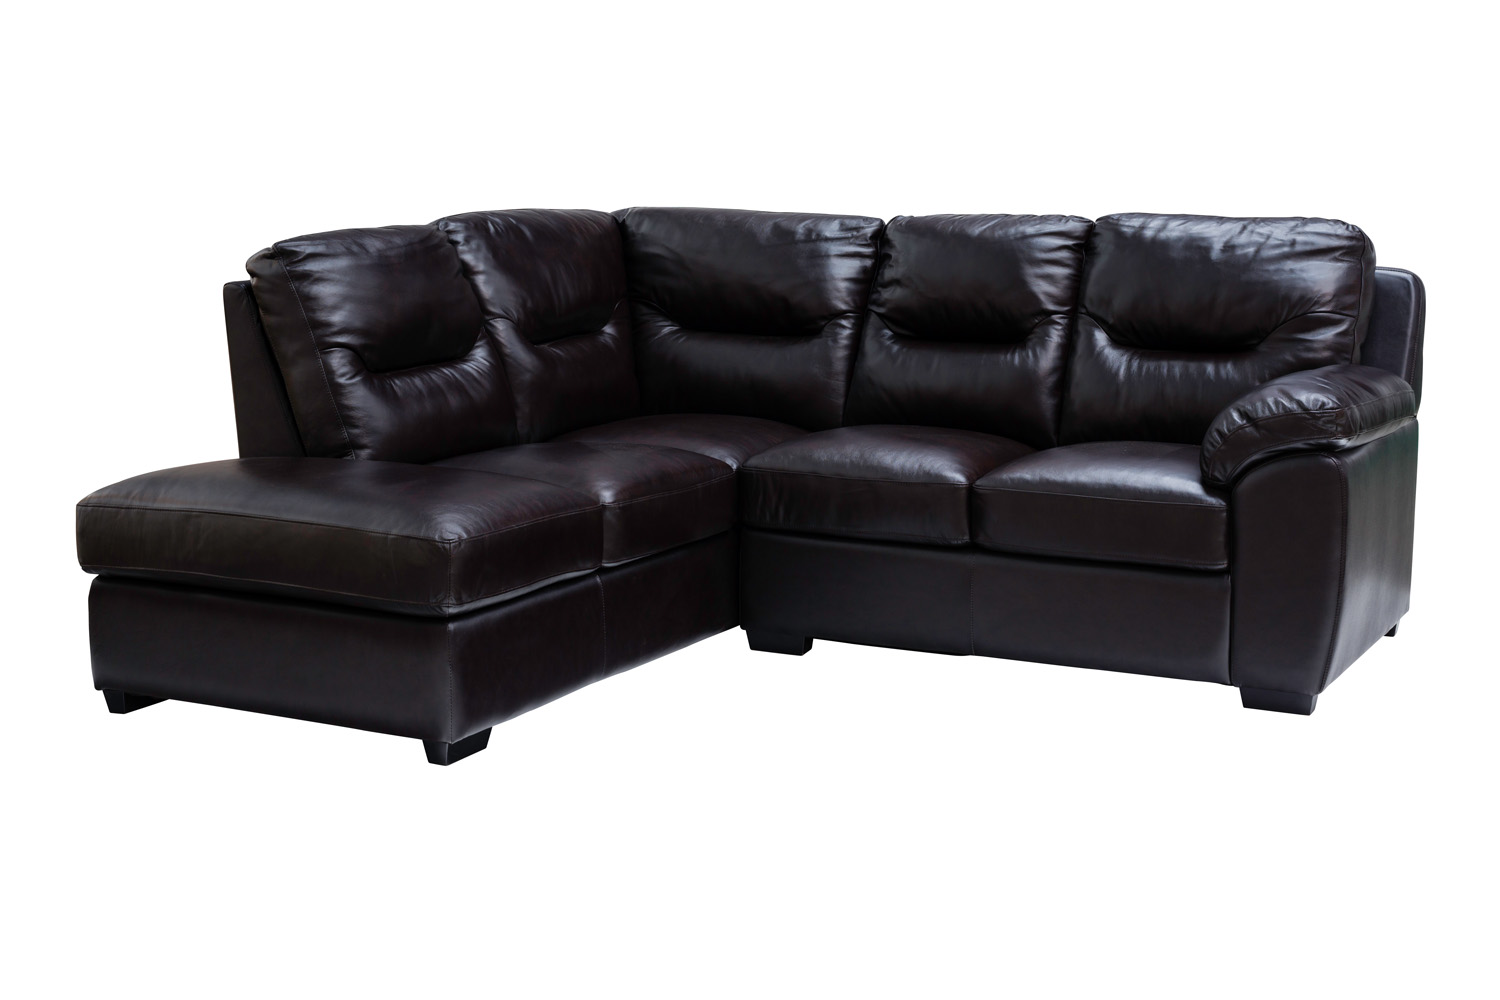 corner recliner sofa northern ireland leather cleaning service singapore sofas for sale